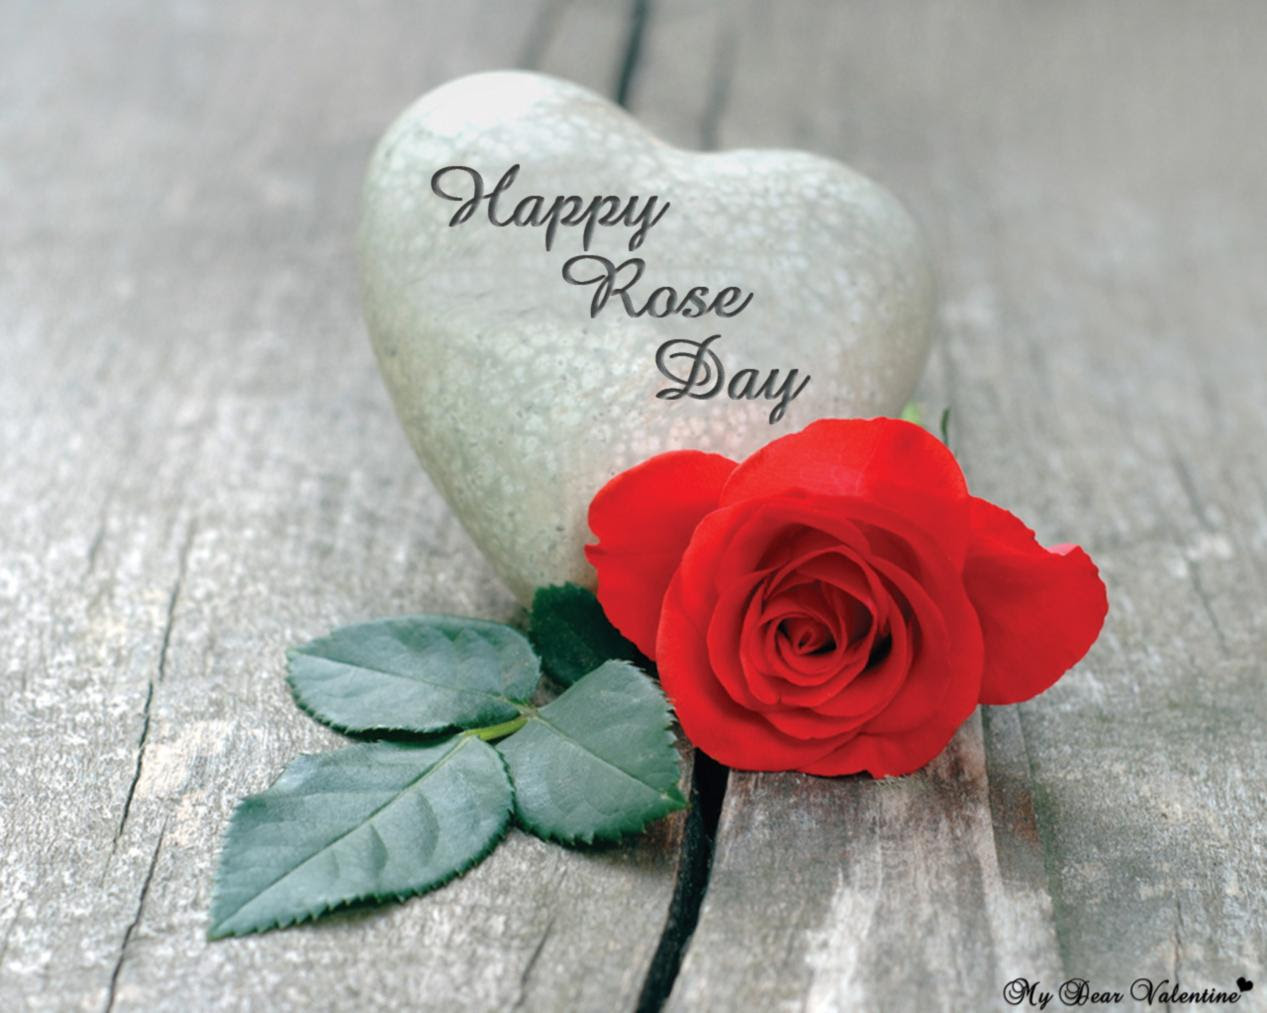 Rose Day Pics Hd Images Status Funny Roses Are Red Poems